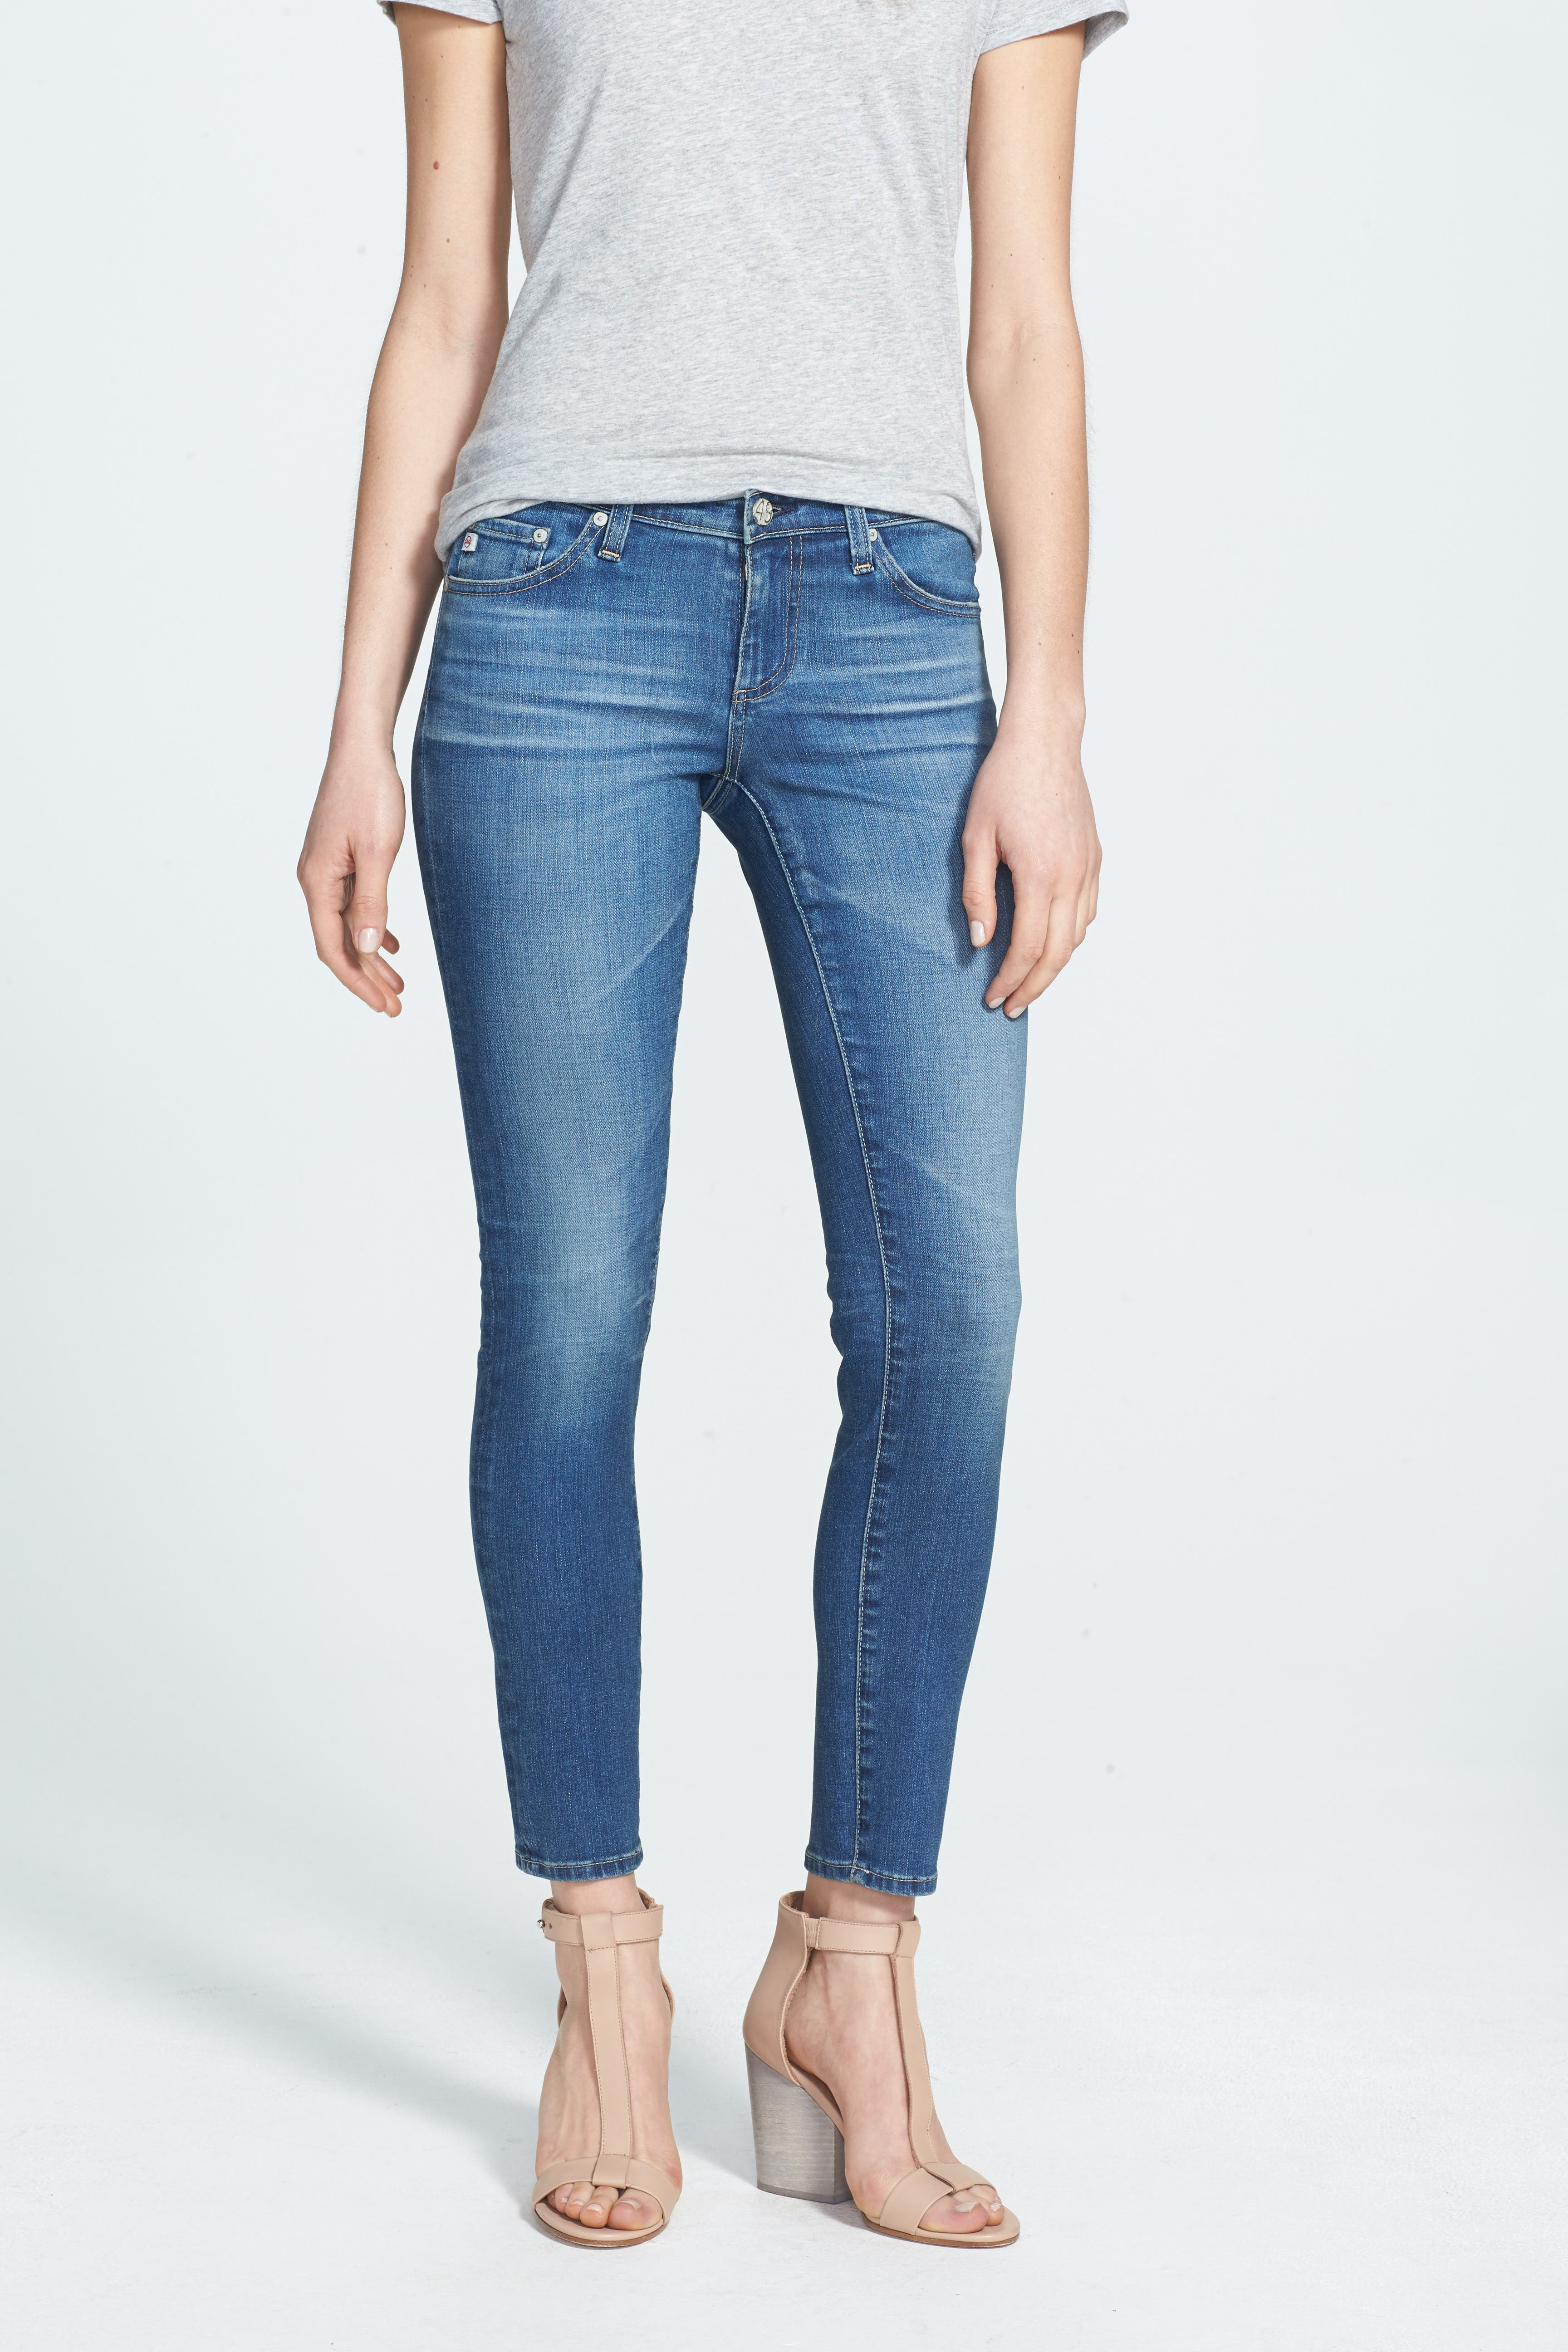 AG, 'The Legging' Ankle Jeans, Main thumbnail 1, color, 18 YEAR